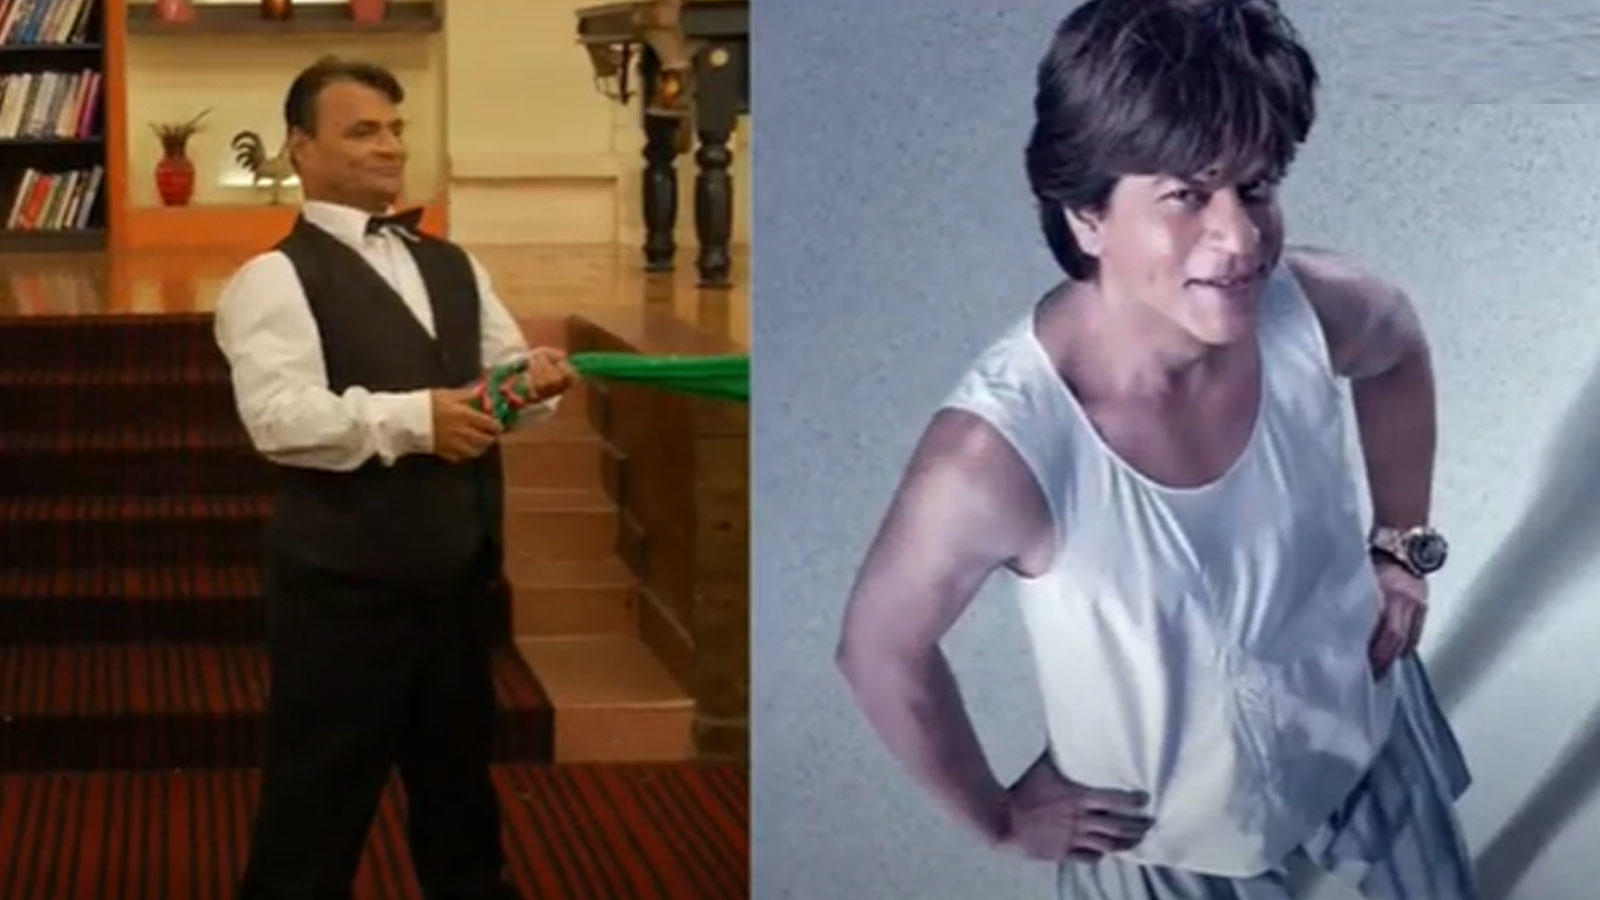 actor-lilliput-slams-zero-says-shah-rukh-khan-shouldnt-have-done-the-movie